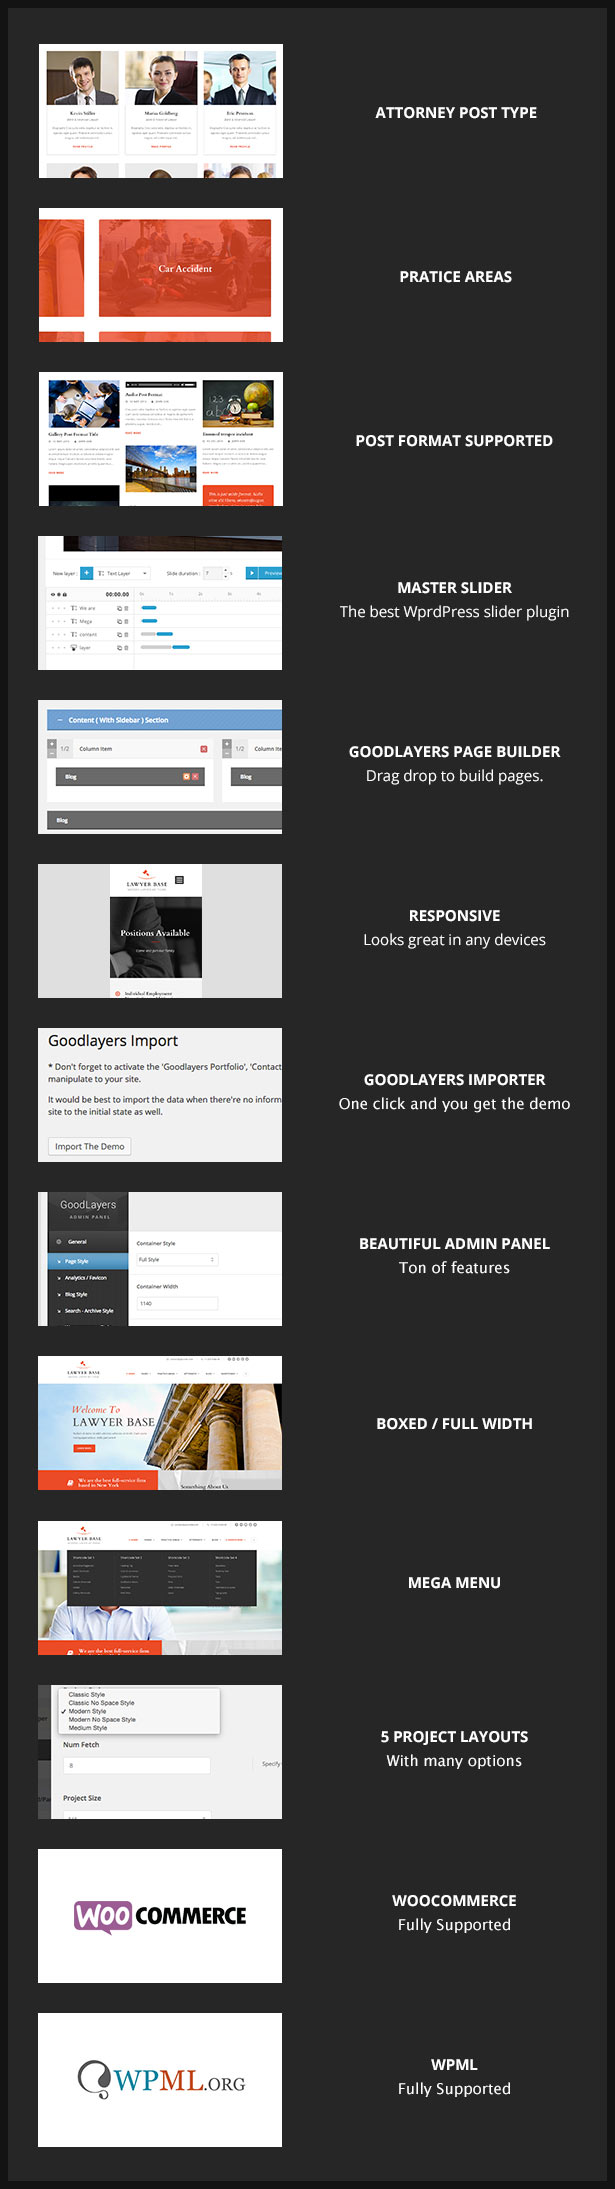 Lawyer Base - Lawyers Attorneys WordPress Theme - 1